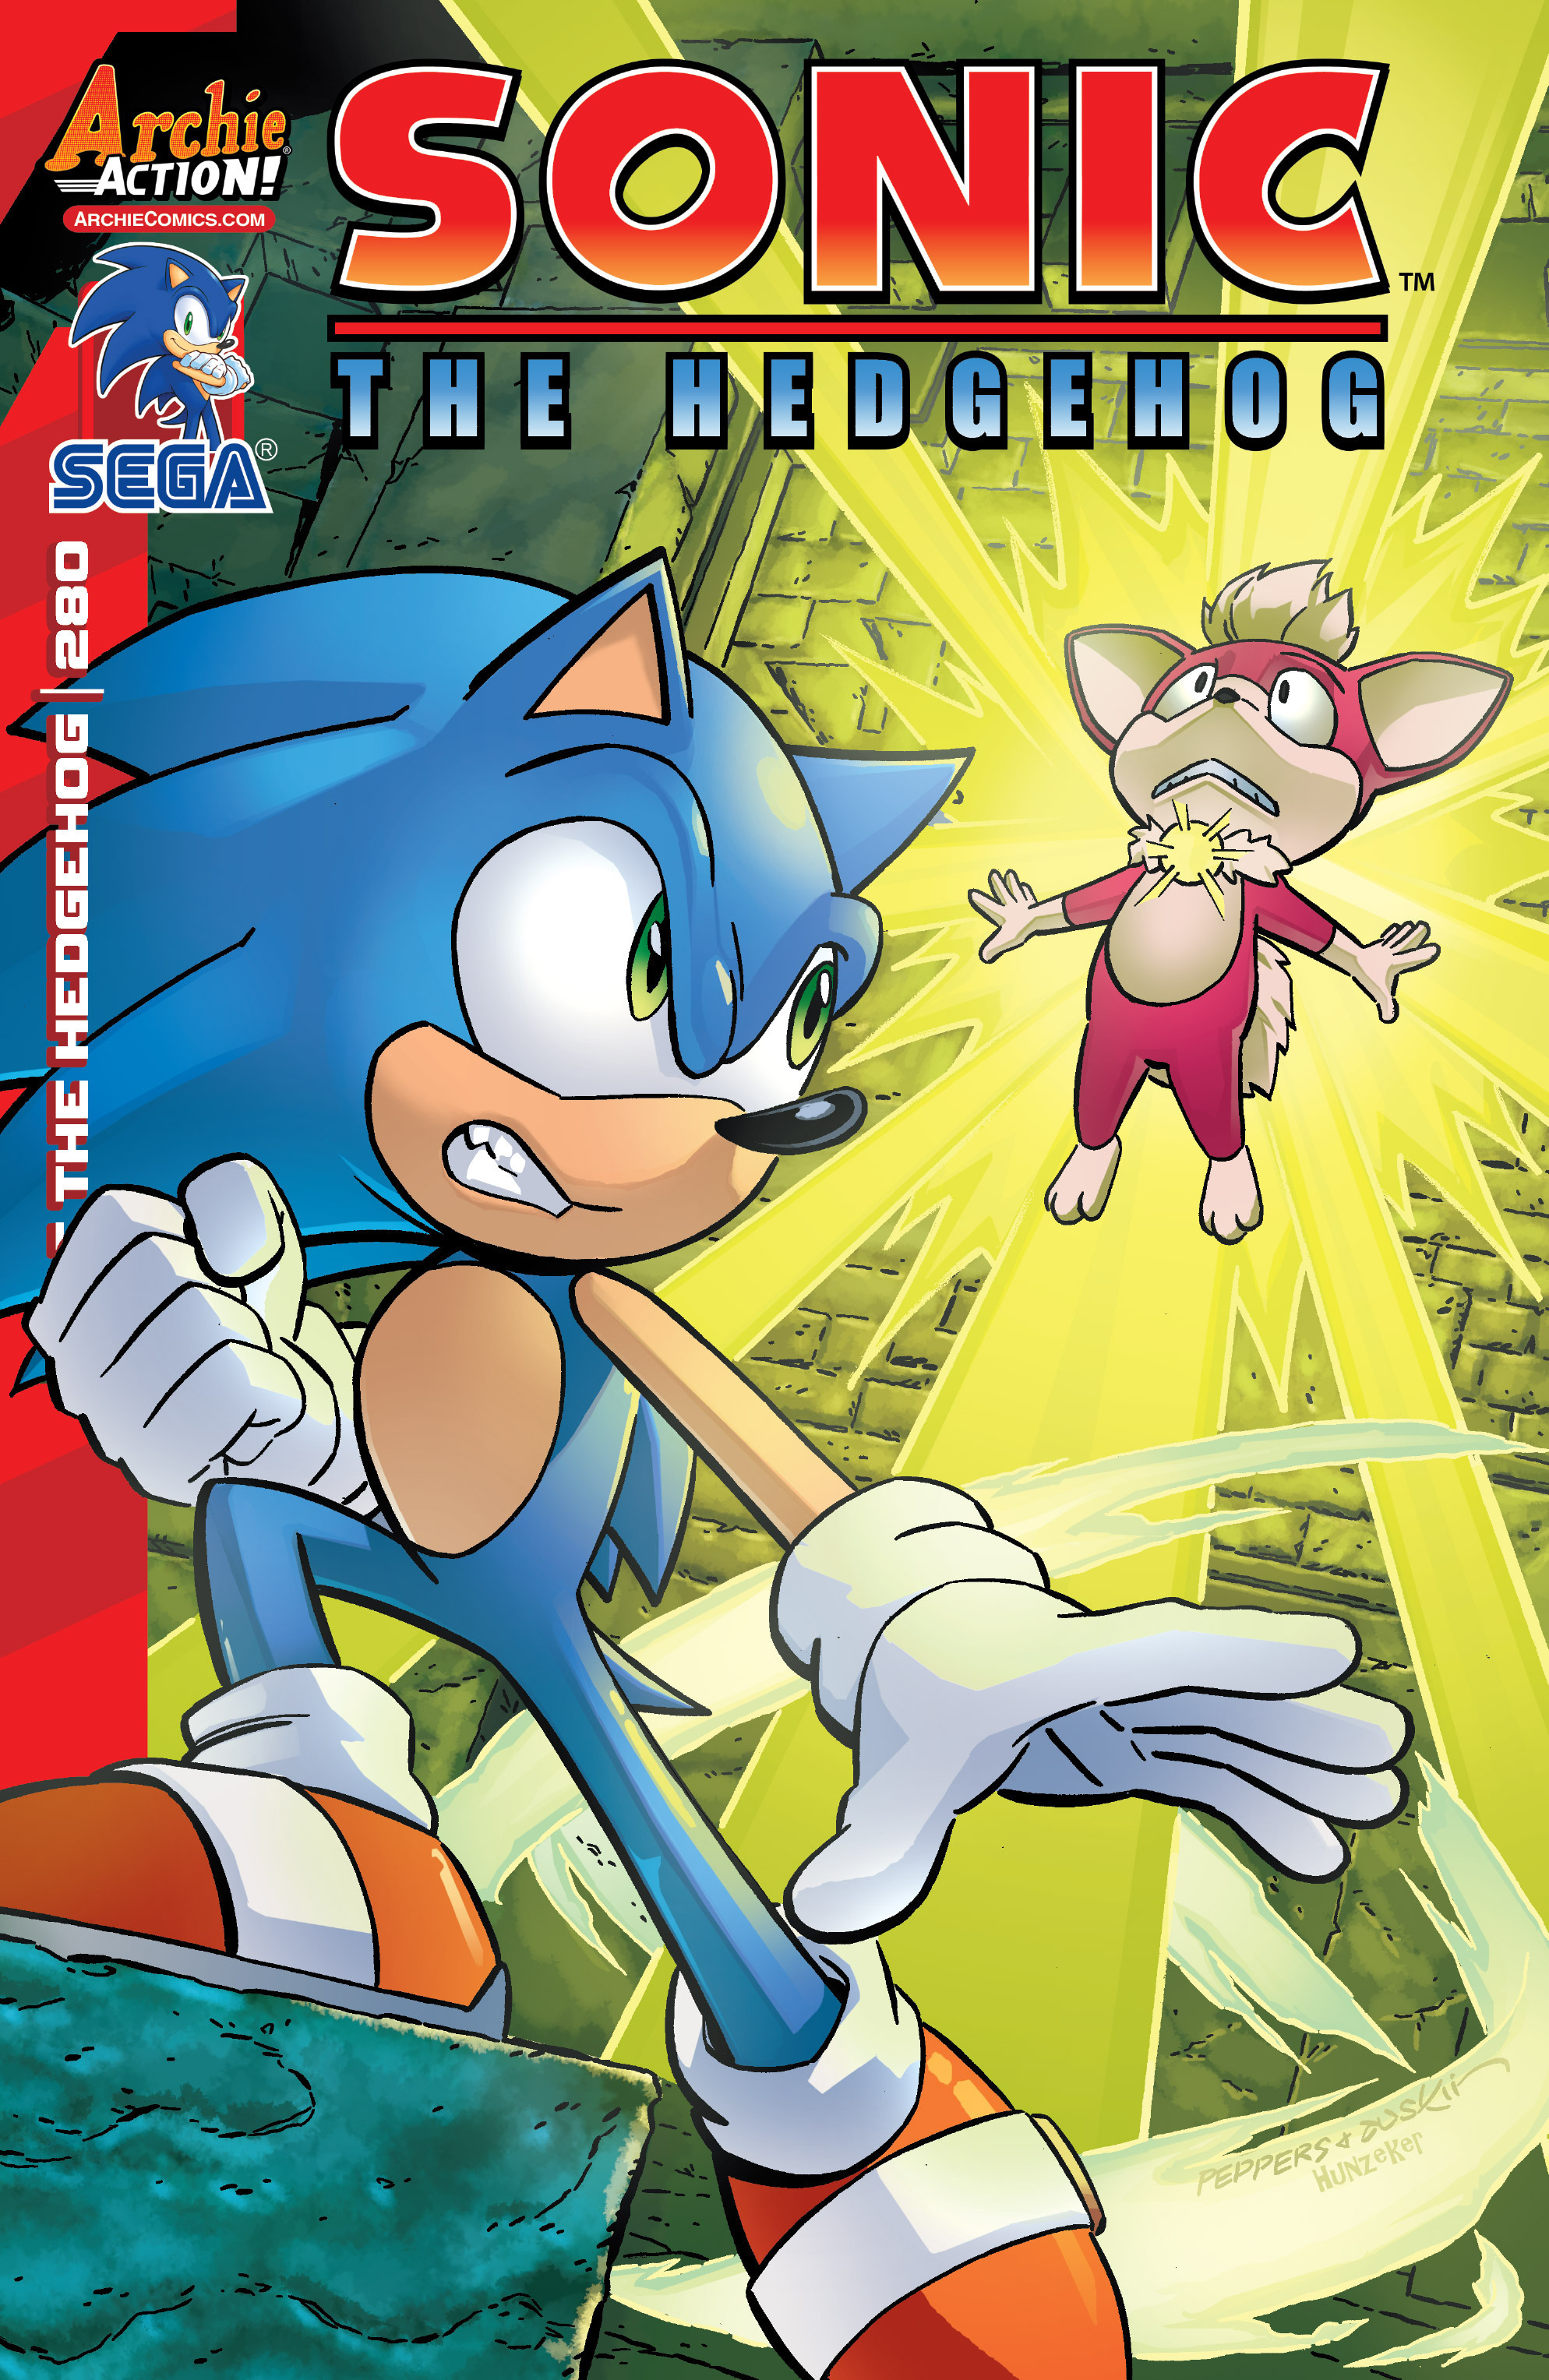 archie sonic the hedgehog issue 280 sonic news network fandom